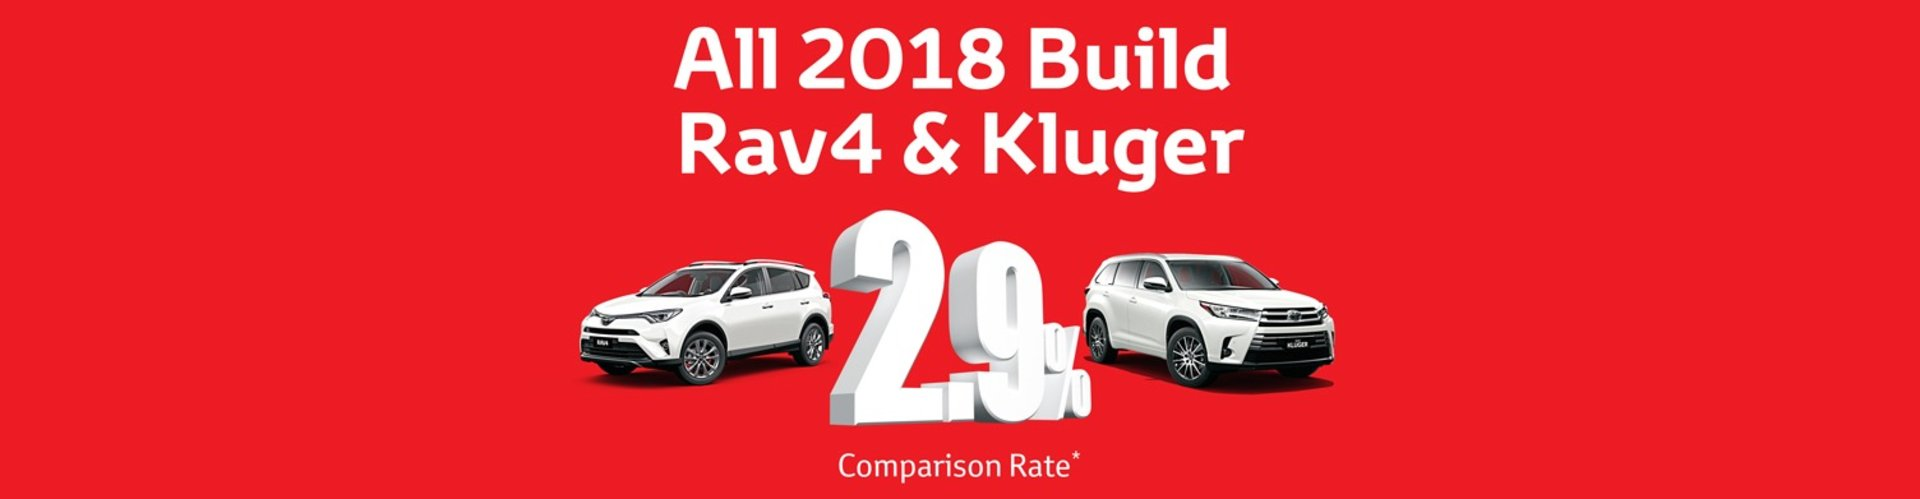 2.9% comparison rate across the All 2018 Rav4 & Kluger models at Waverley Toyota